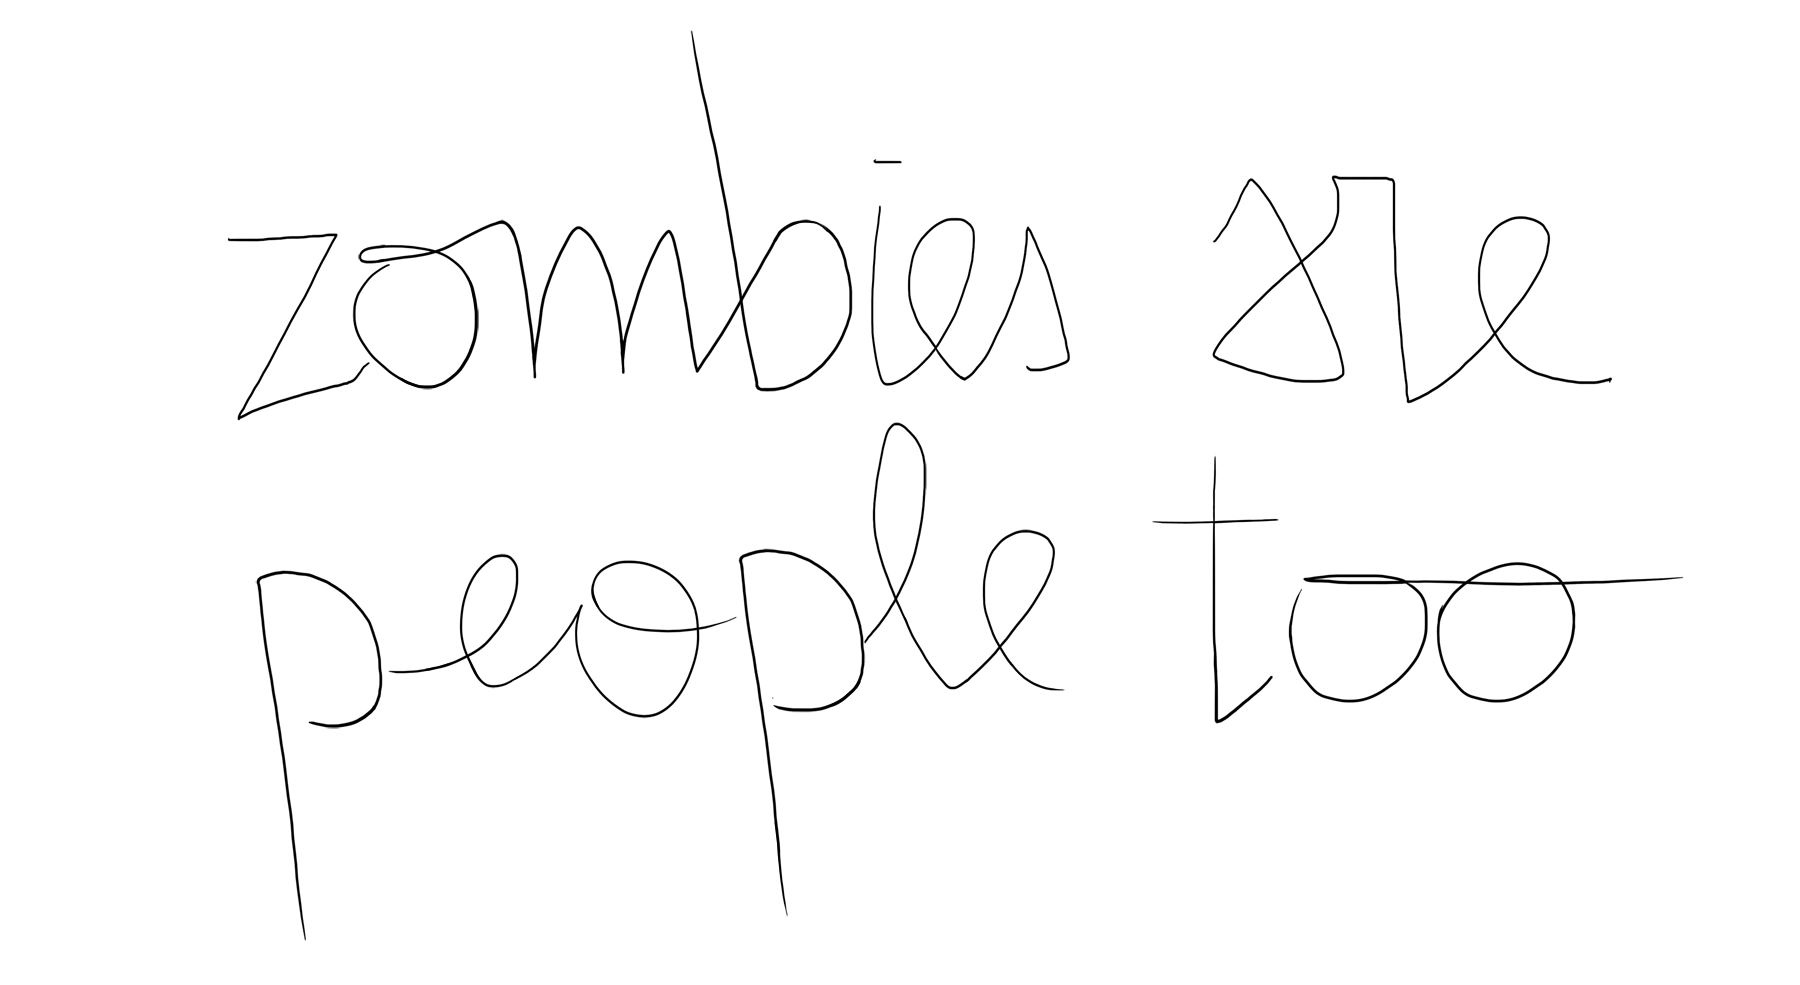 zombies_are_people_too_rosa_brux_ecriture_clovis_duran